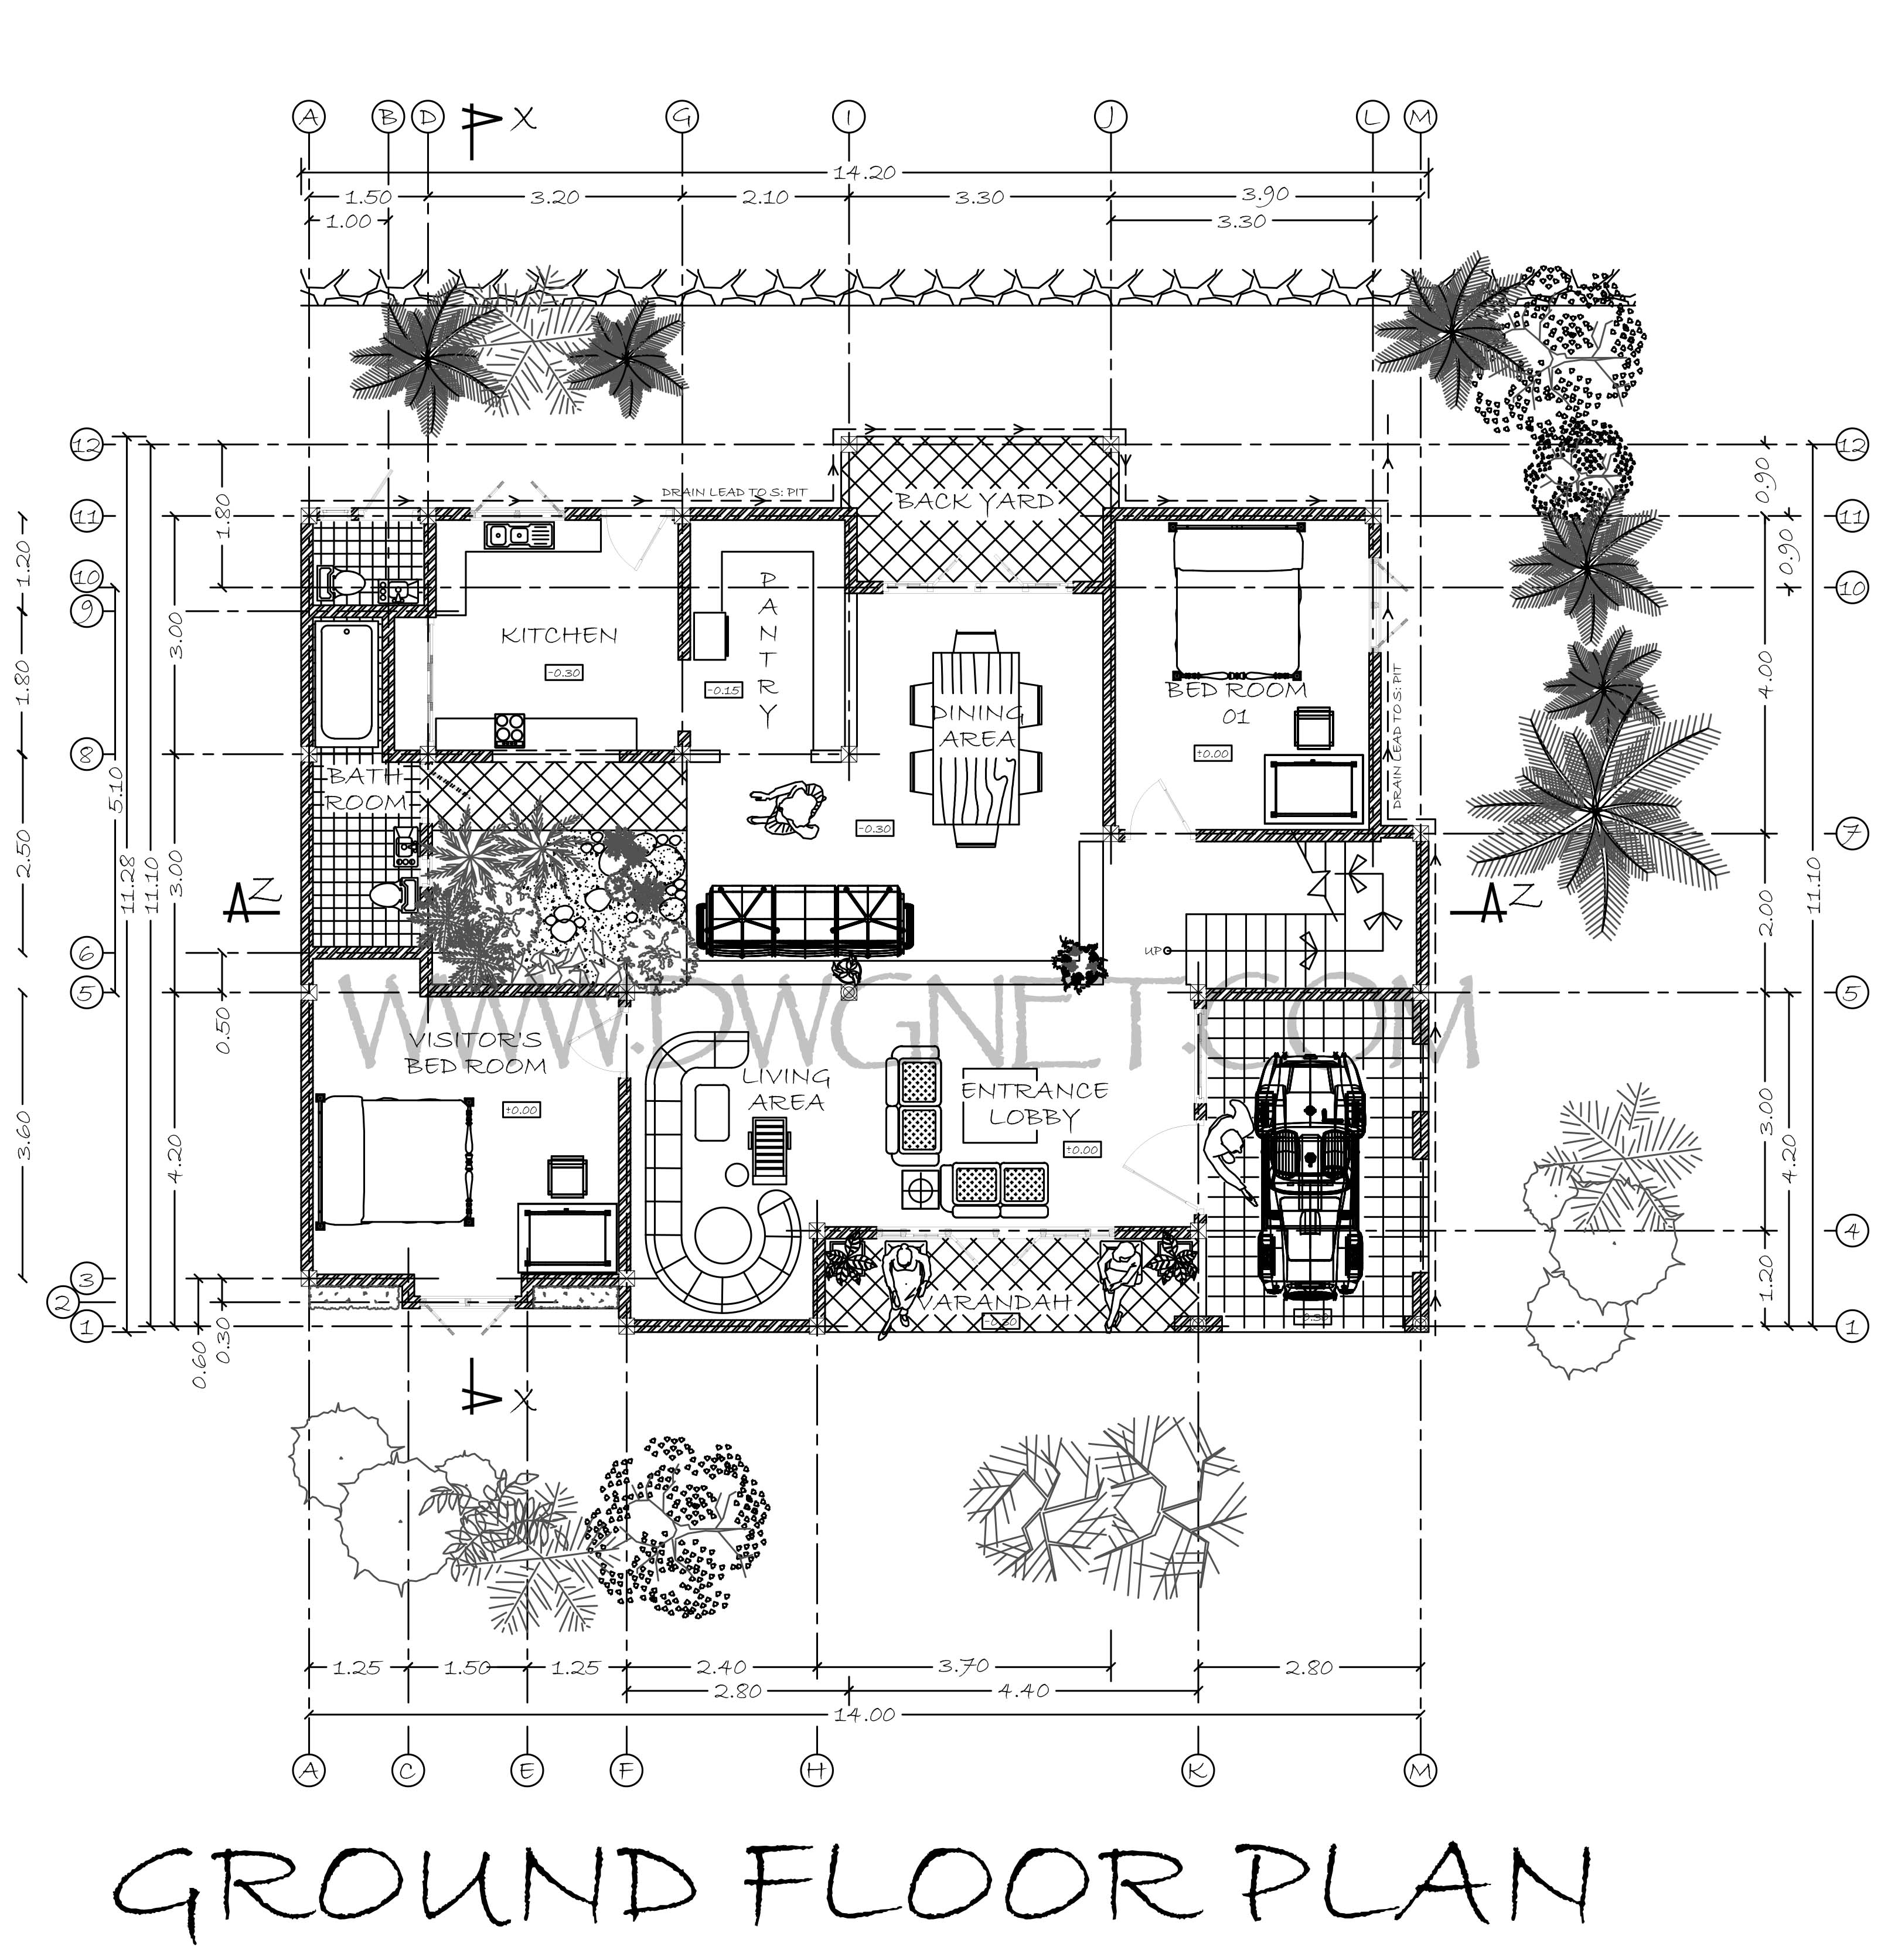 Double Story Four Bed Room Small House Plan Free Download